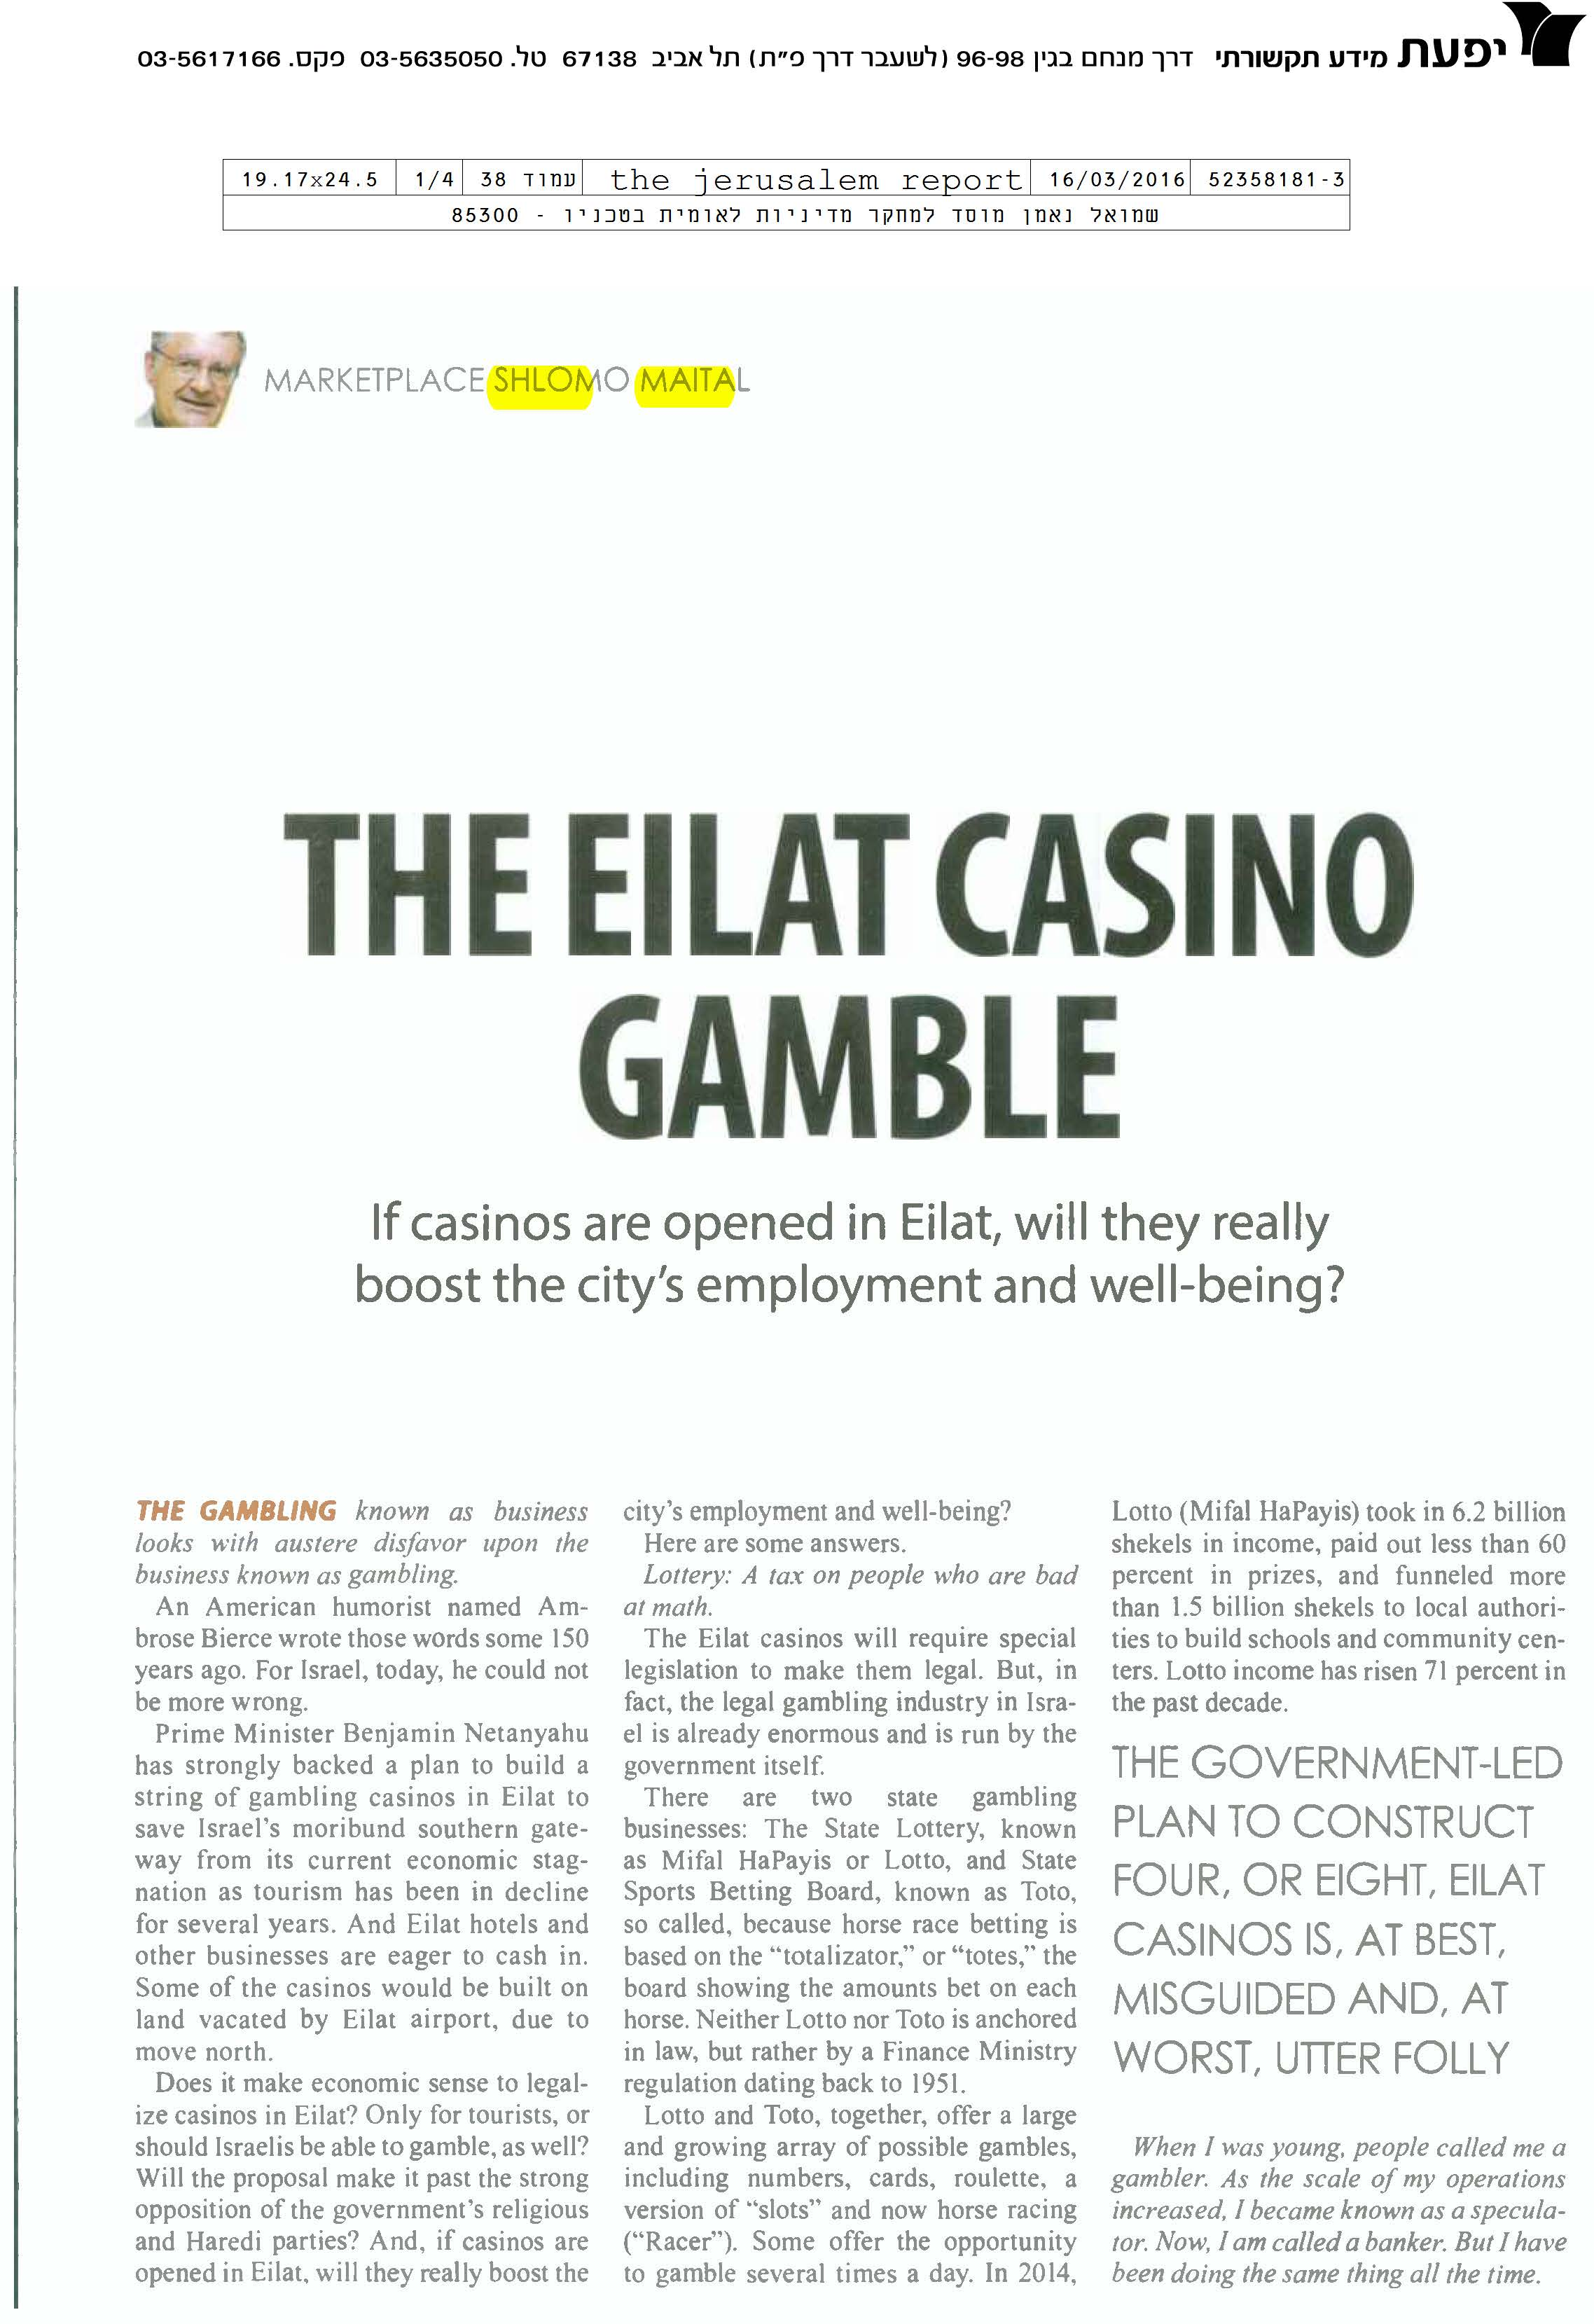 The Eilat Casino Gamble